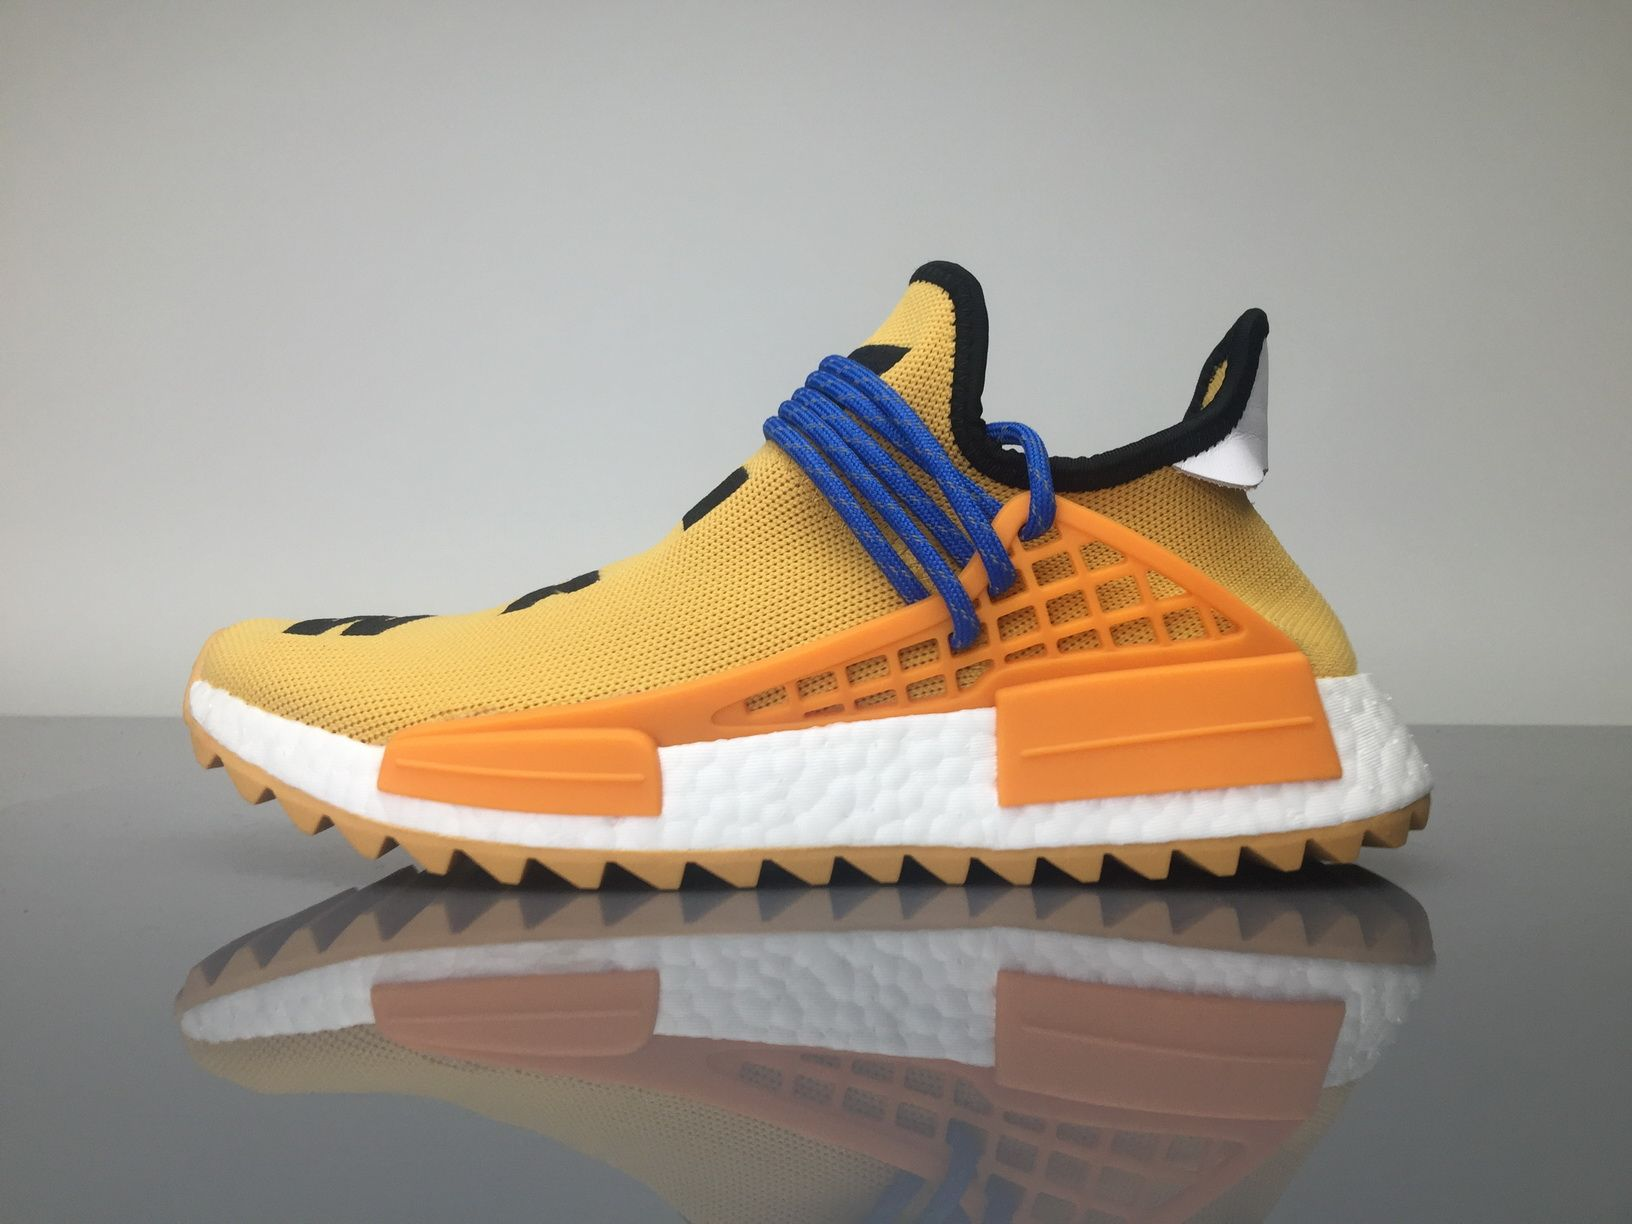 "ef3aed8be Adidas NMD Human Race Pharrell Williams ""Pale Nude"" AC7361 Orange Yellow  for Sale"